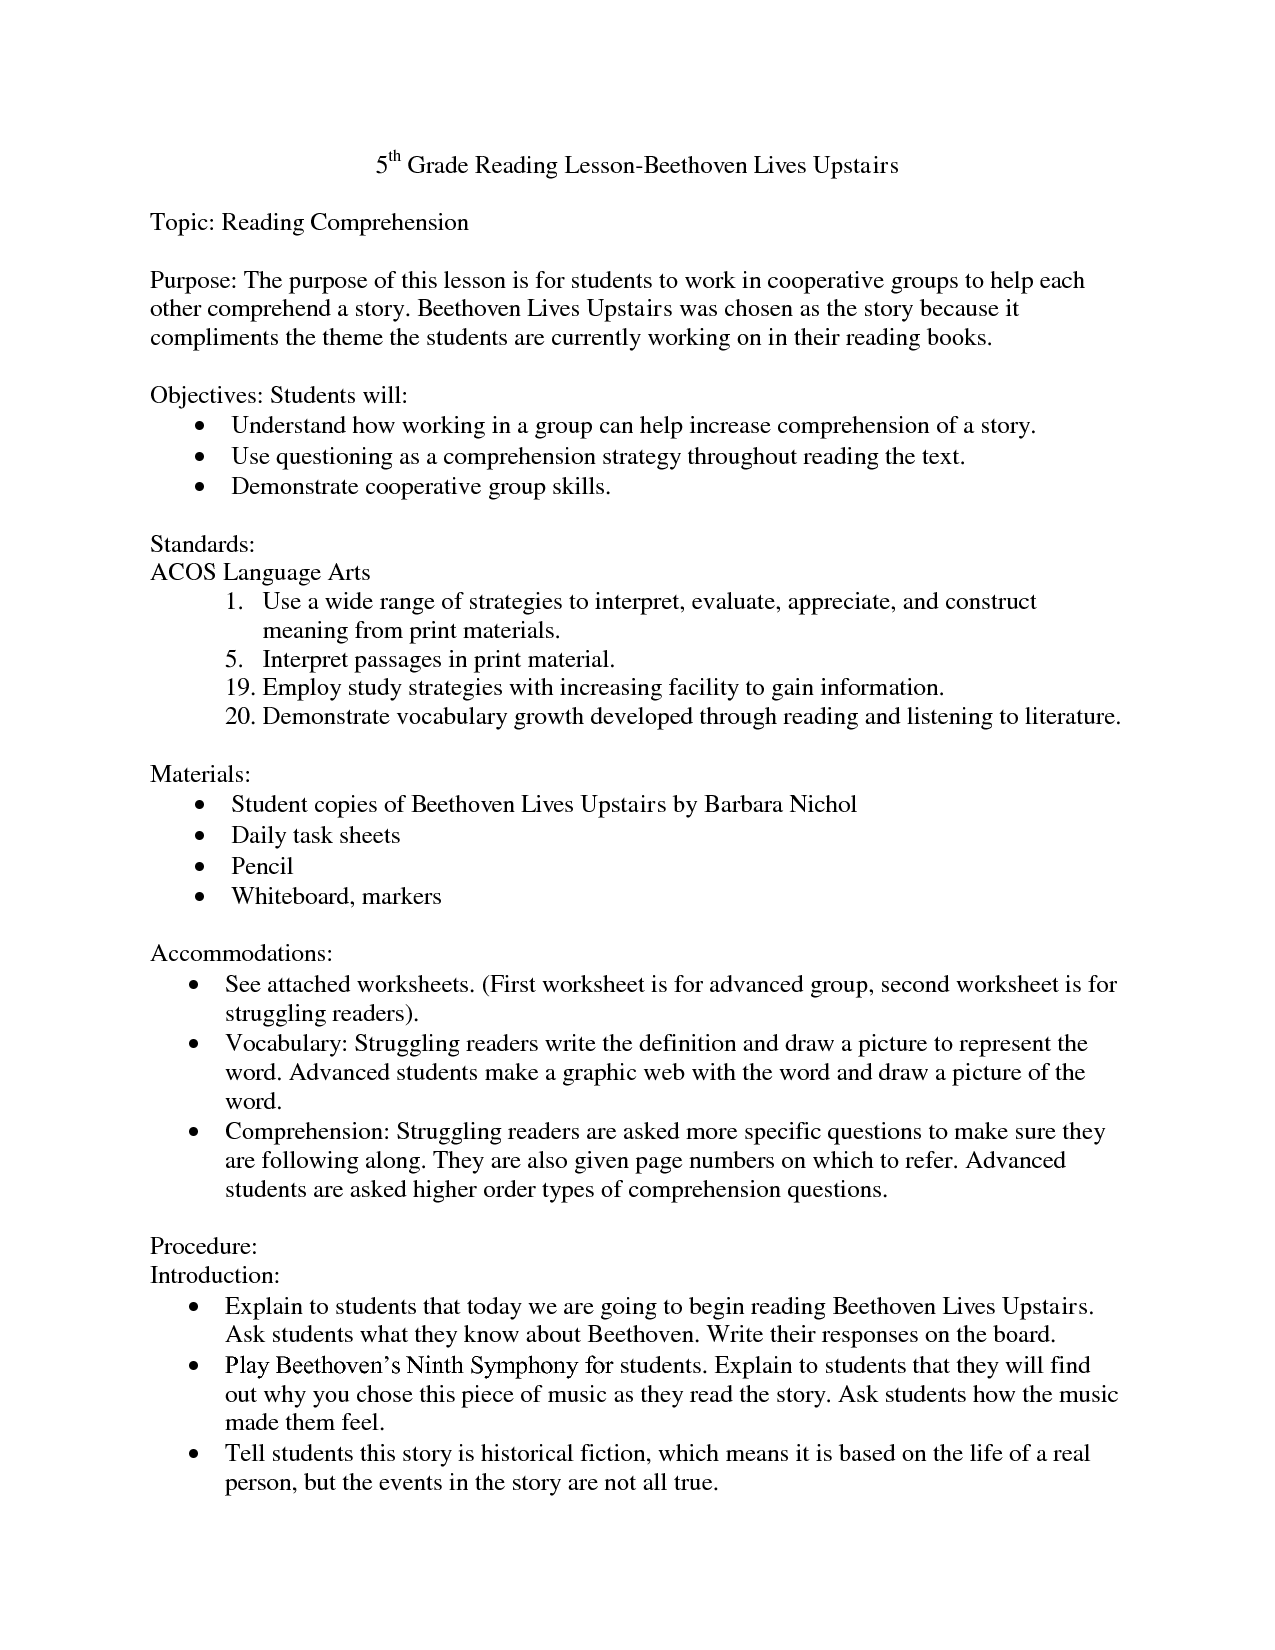 essay for reading comprehension